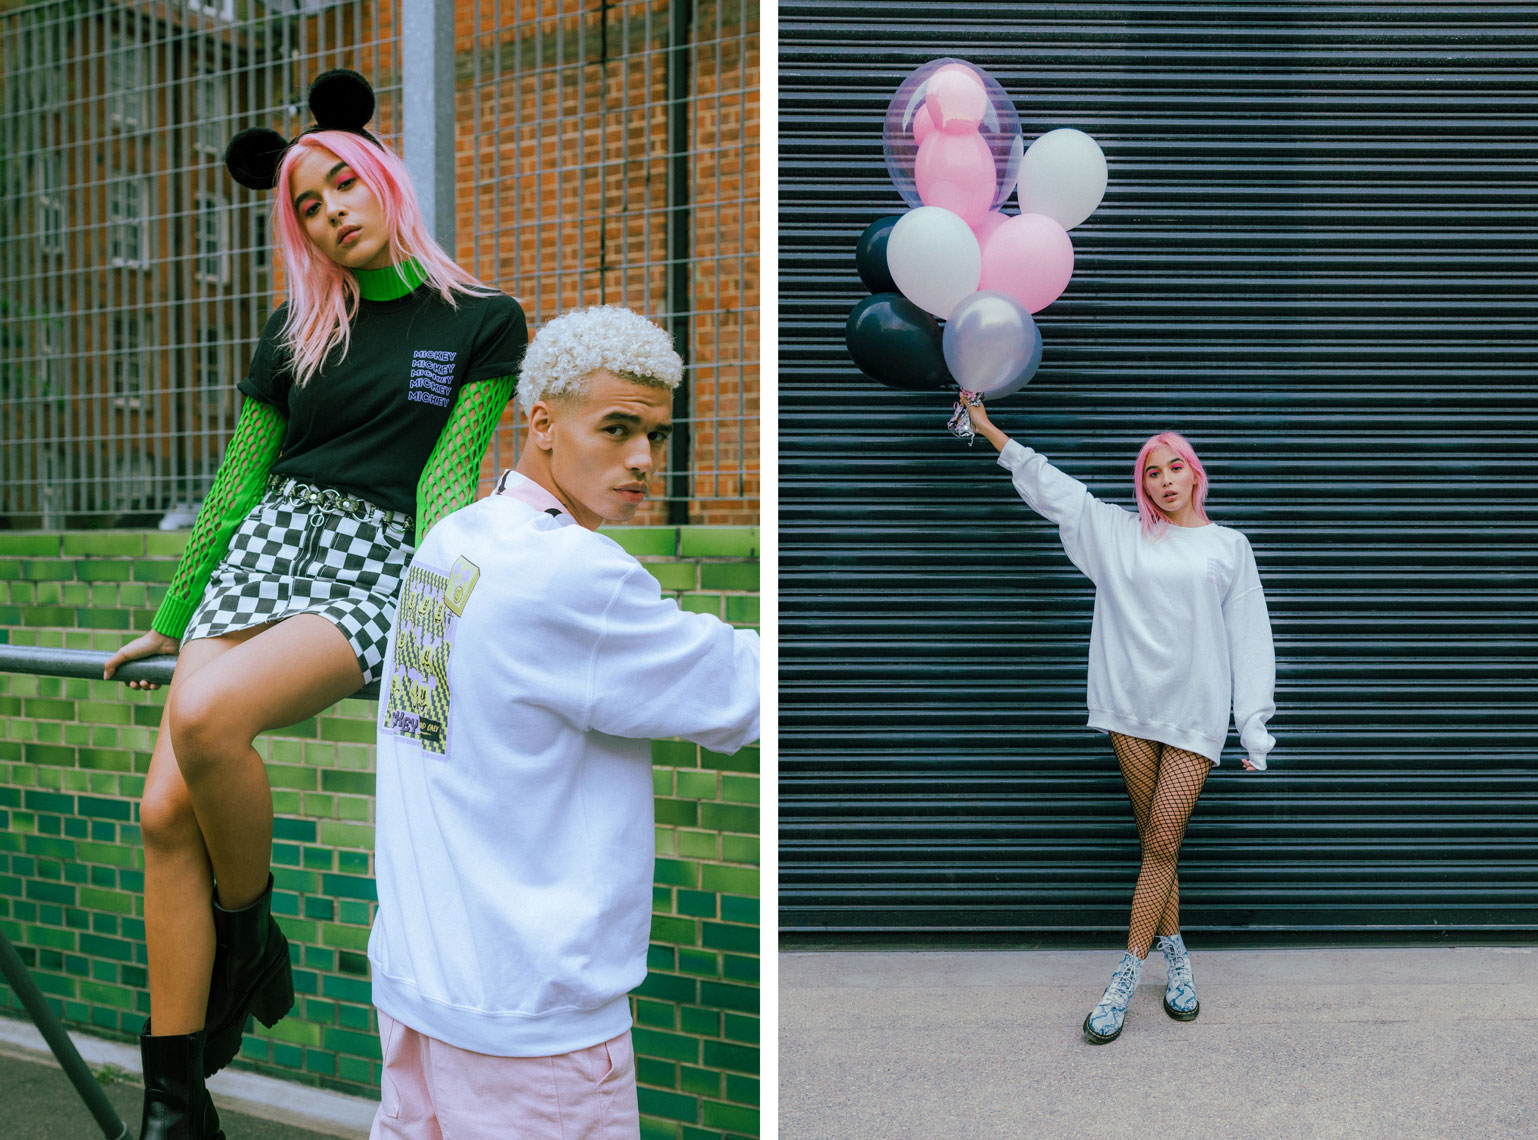 issie-gibbons-fashion-stylist-skinnydip-disney-mickey-skater-girl-boy-green-pink